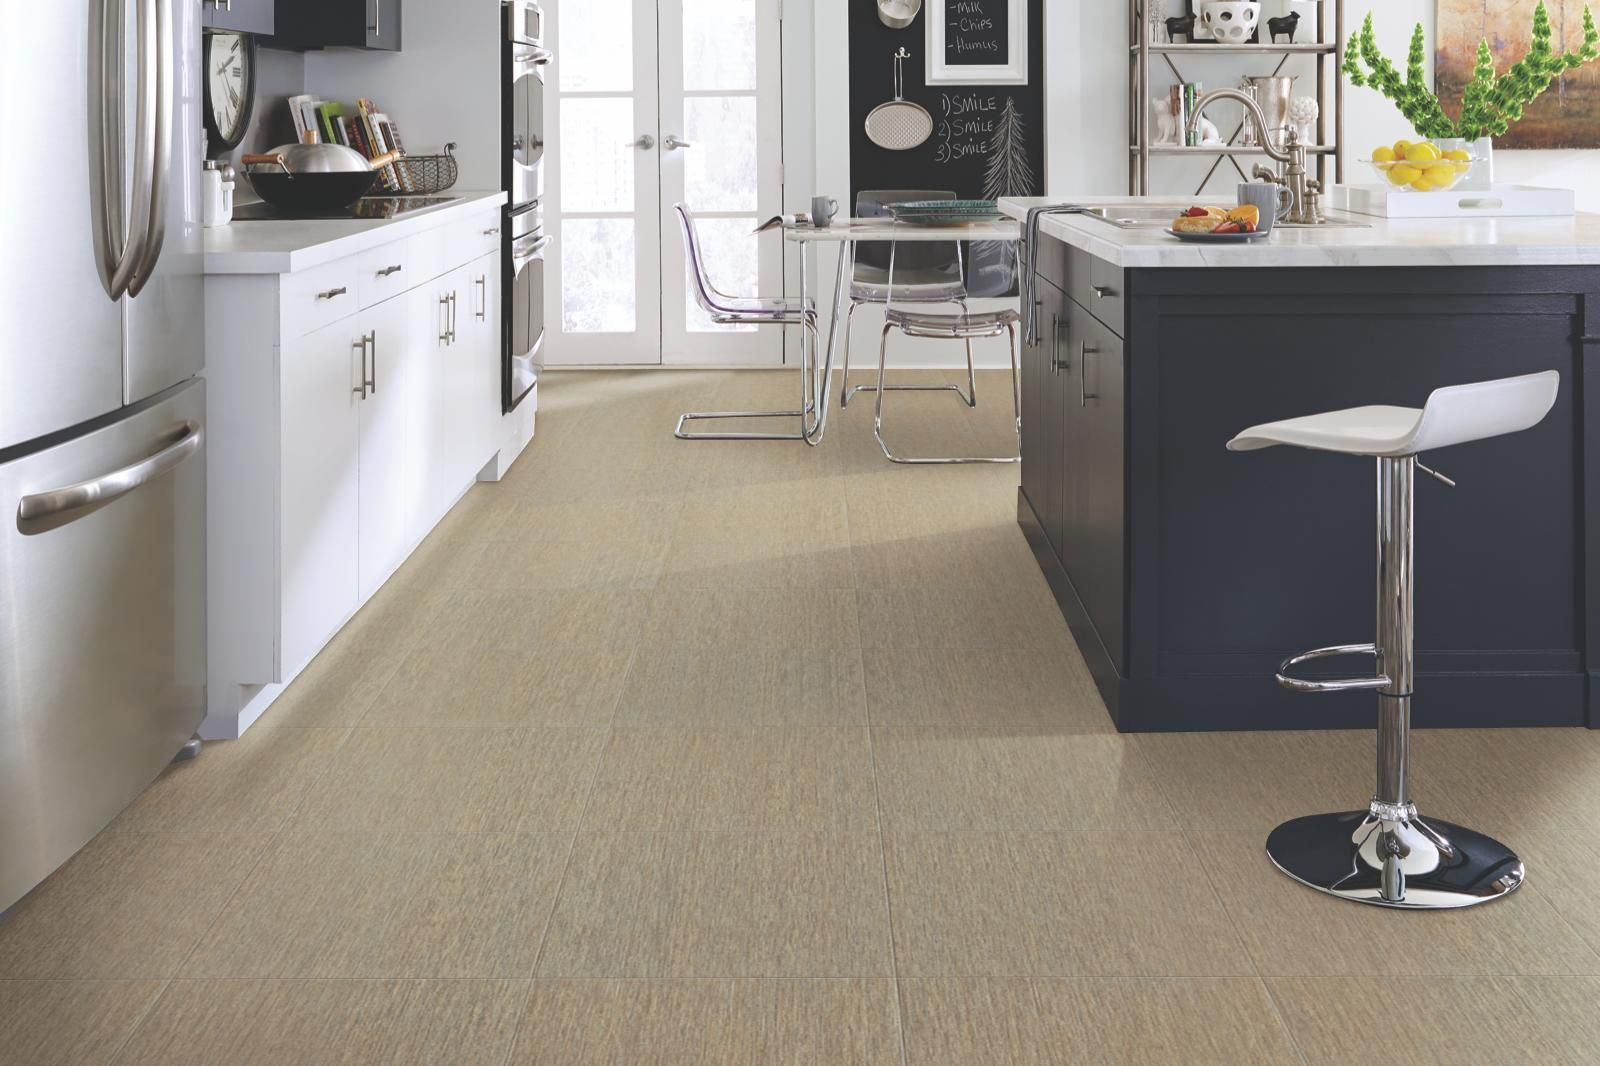 our new adura in vibe linen - Mannington Flooring